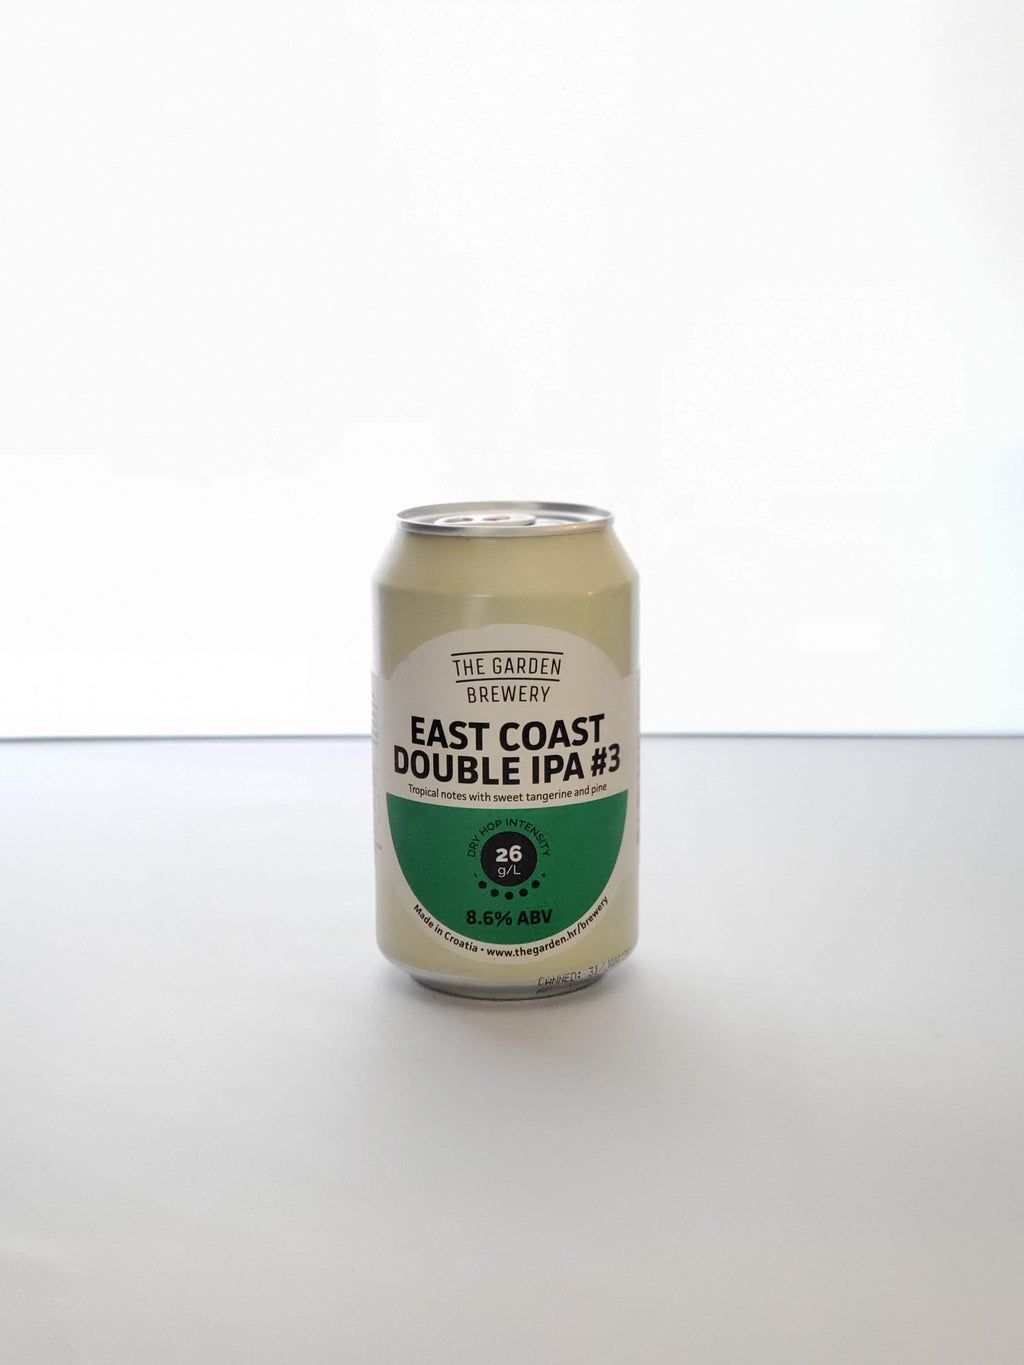 The Garden Brewery, East Coast Double IPA (Croatie, Imperial IPA) - La Petite Barrique